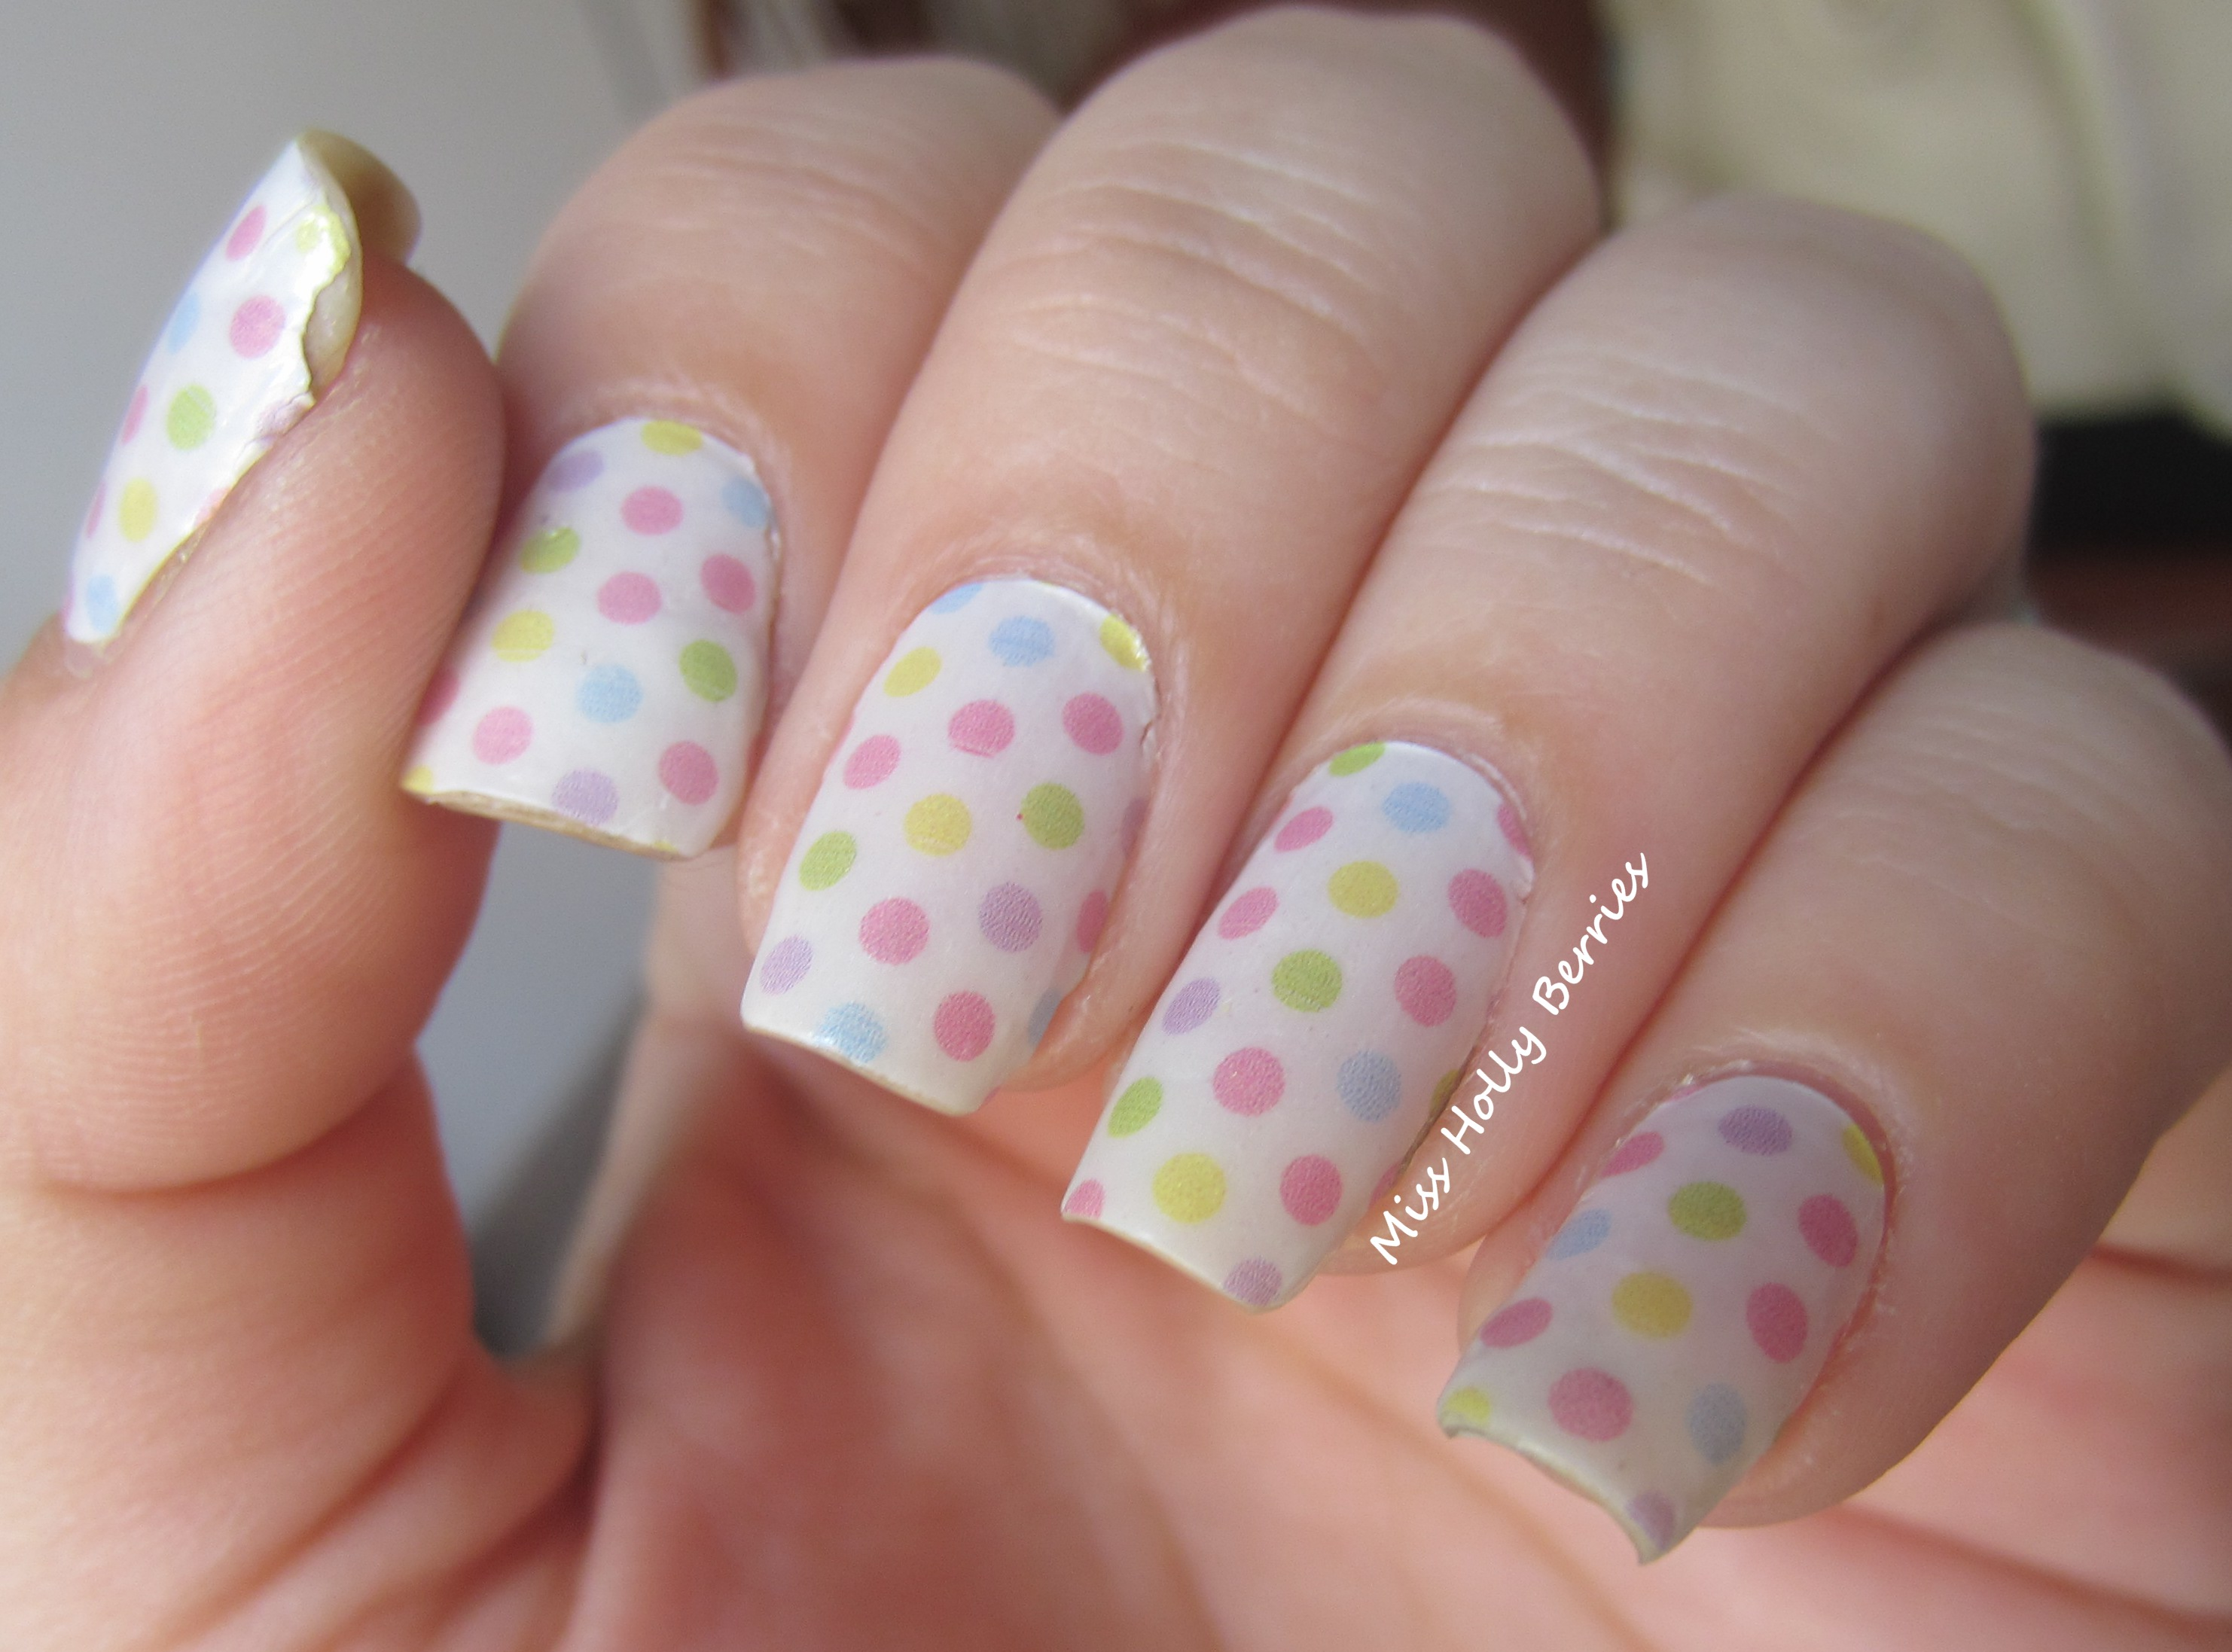 Incoco Nail Polish Applique Sweet Spots Review! | misshollyberries